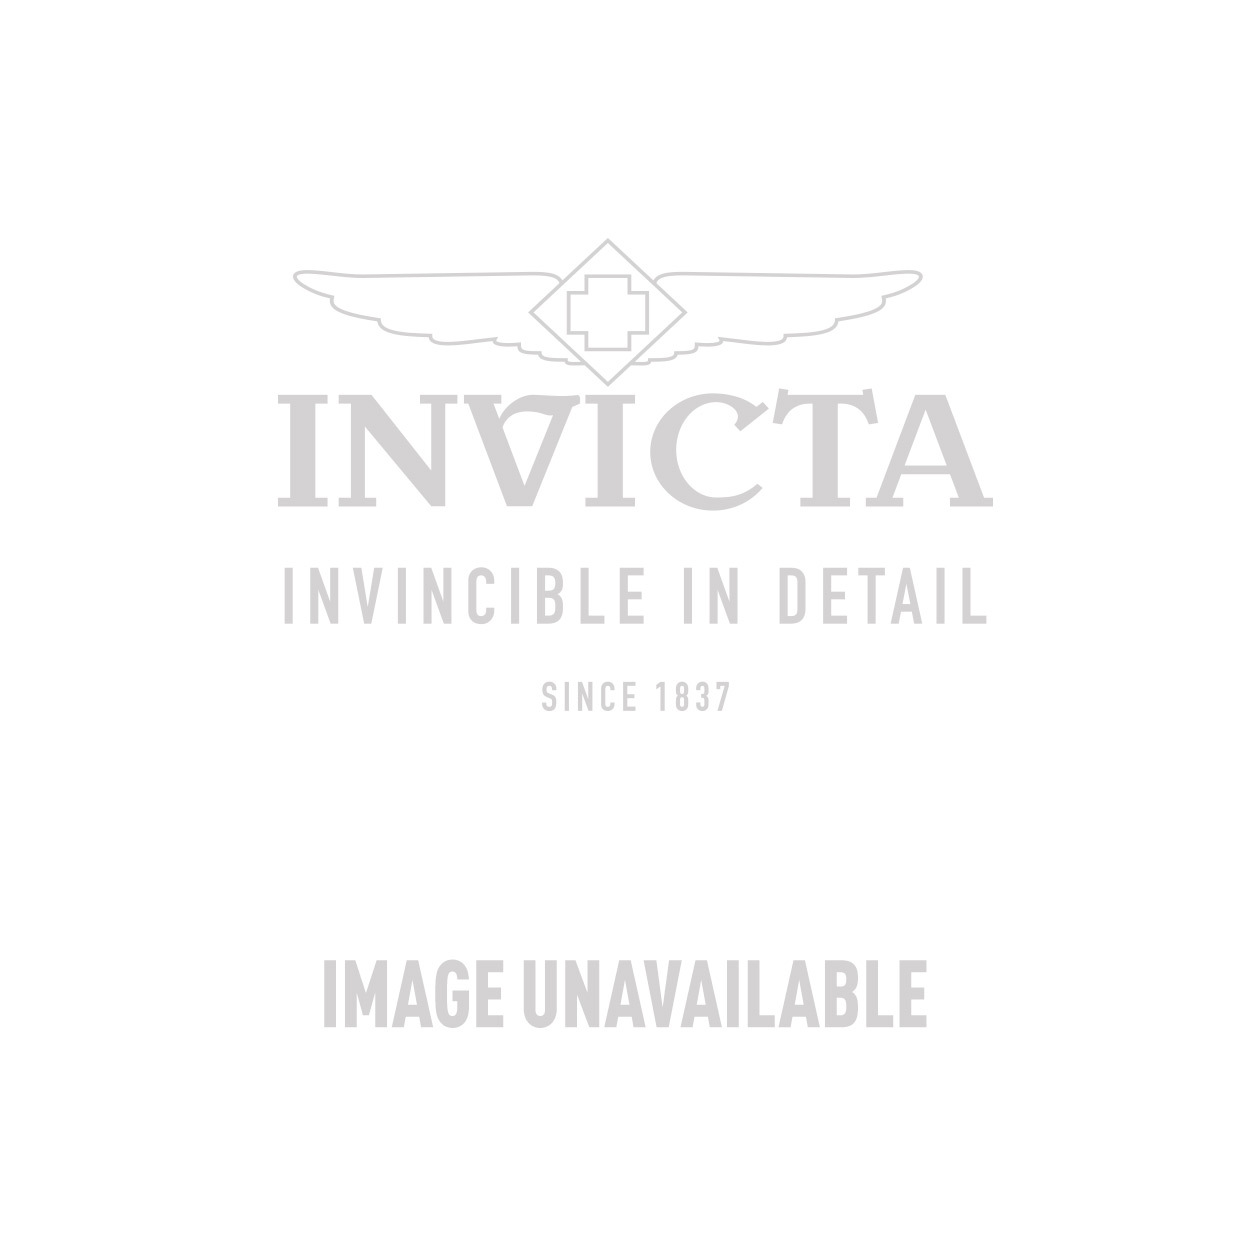 Invicta Angel Swiss Movement Quartz Watch - Gold case with Gold tone Stainless Steel band - Model 0464